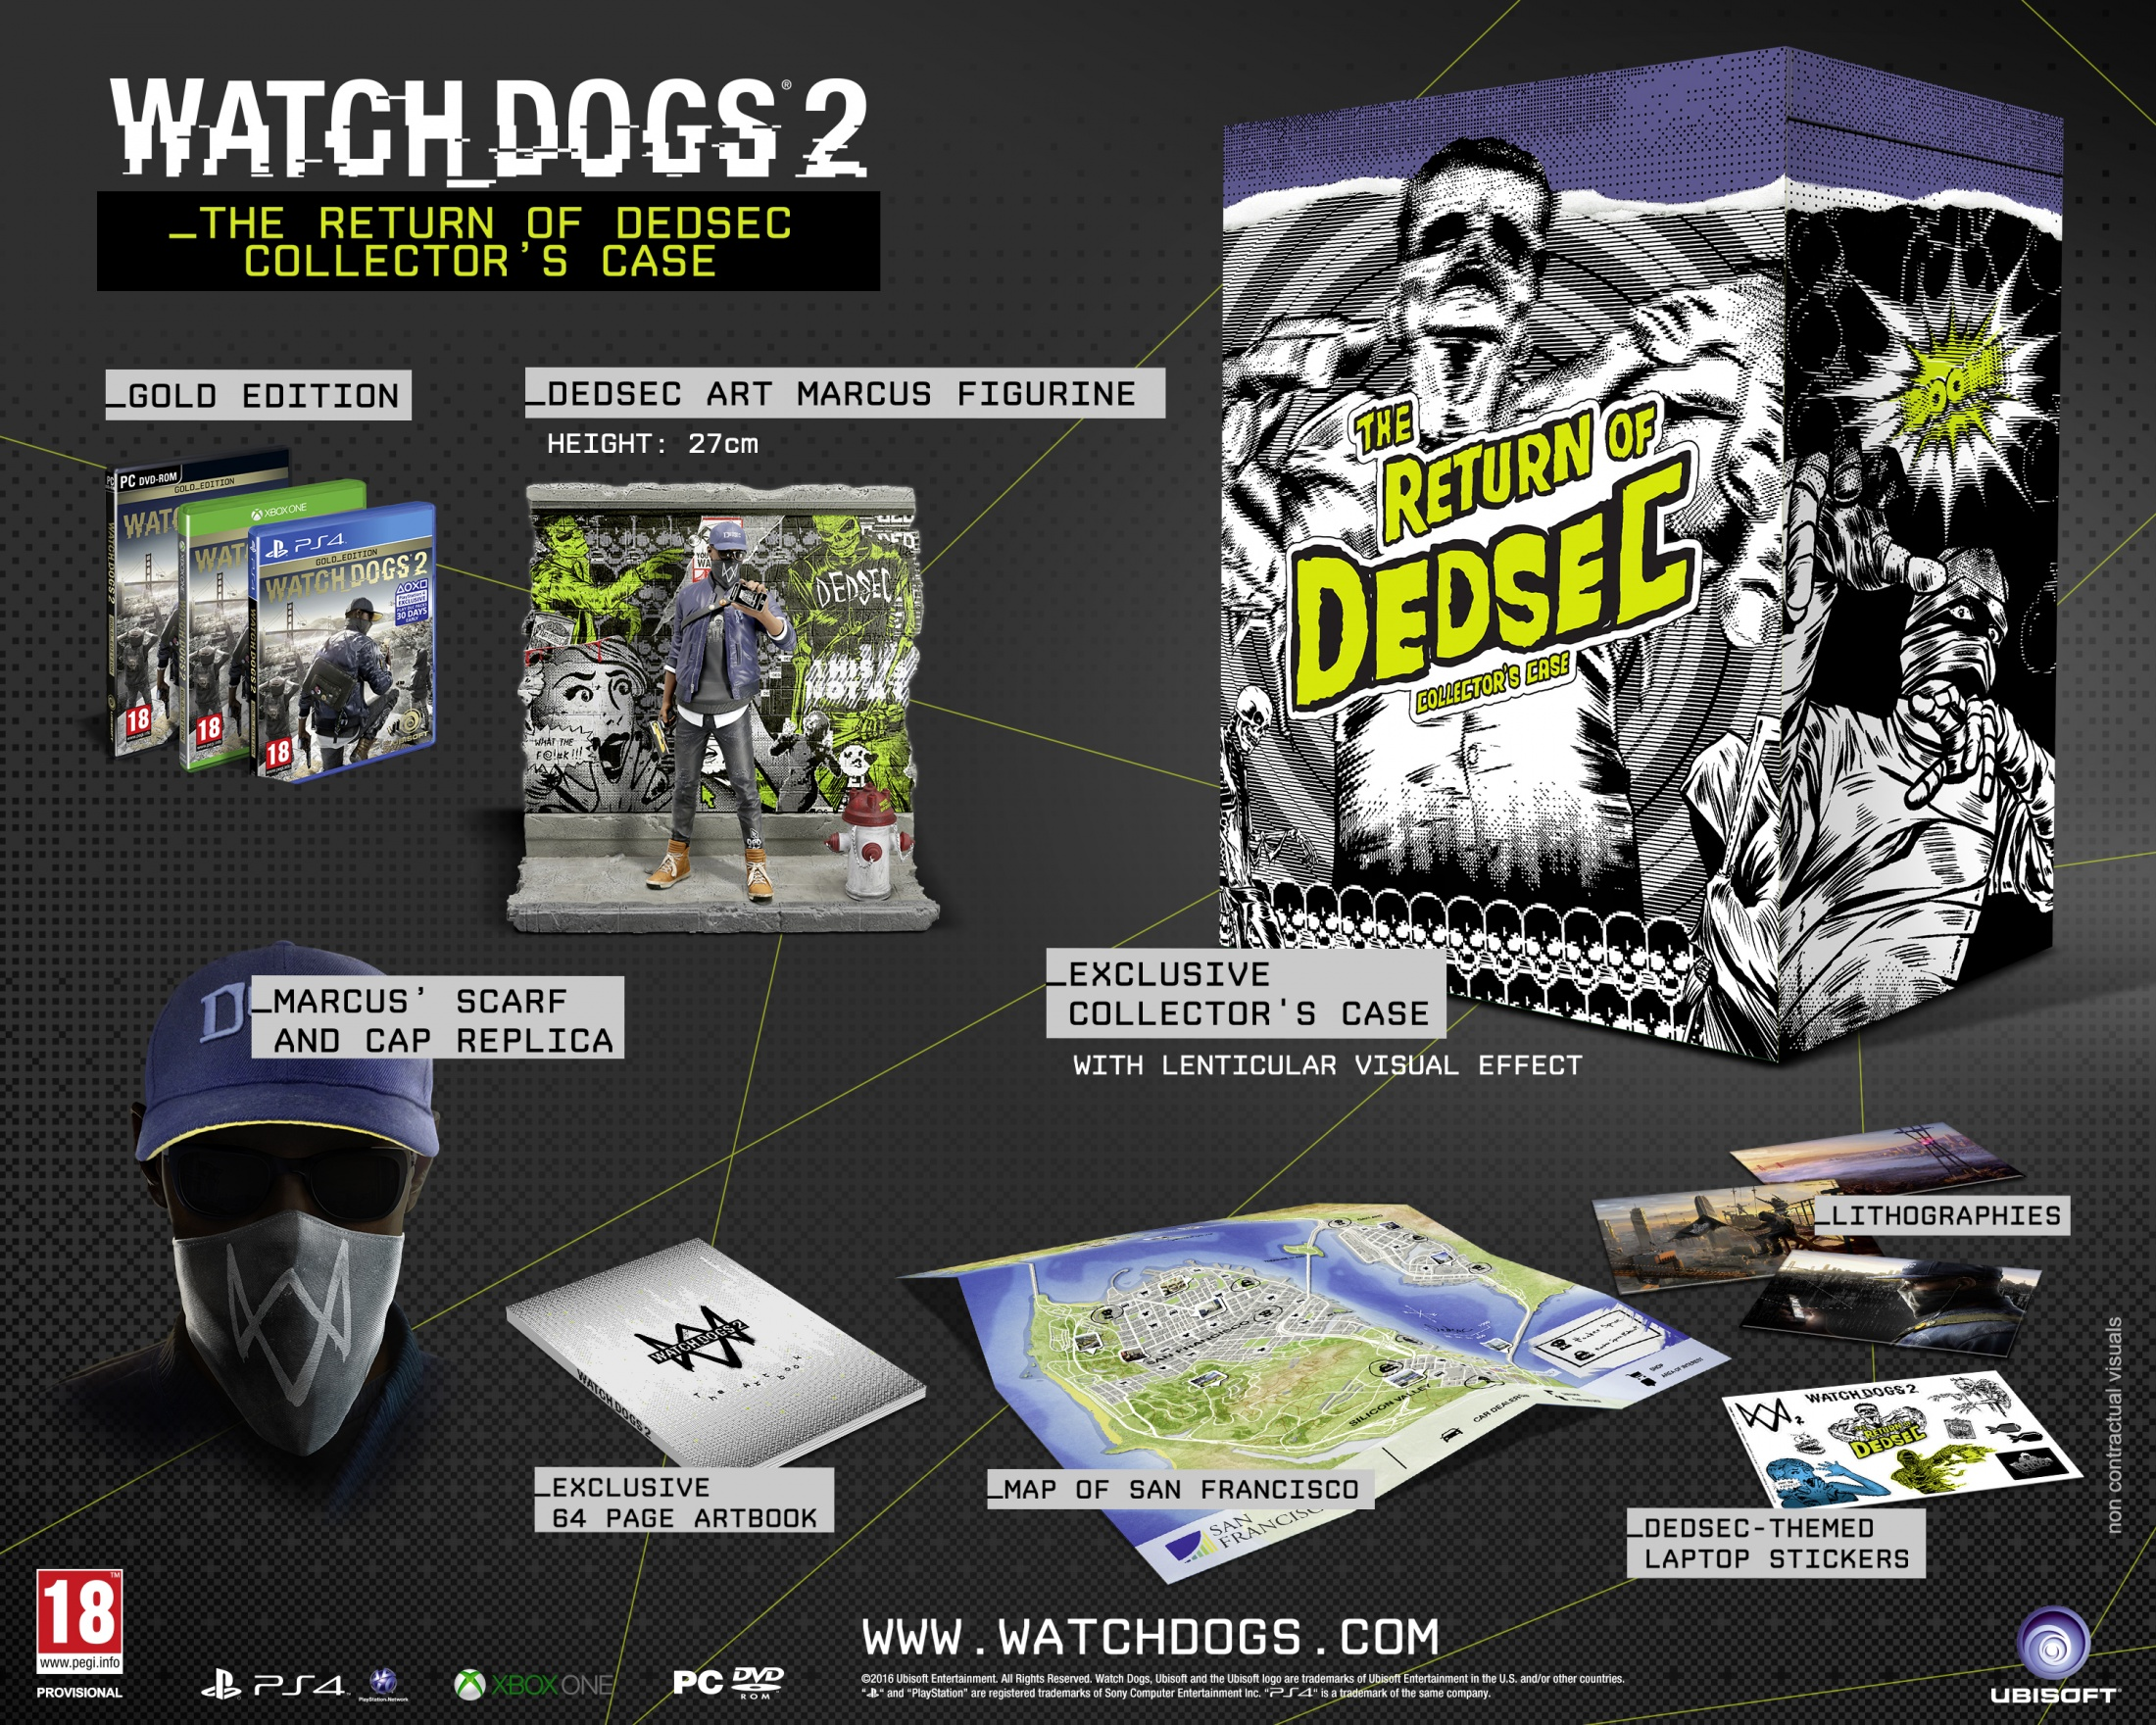 Image Media for Watch Dogs 2 - The Return Of Dedsec COLLECTOR'S CASE